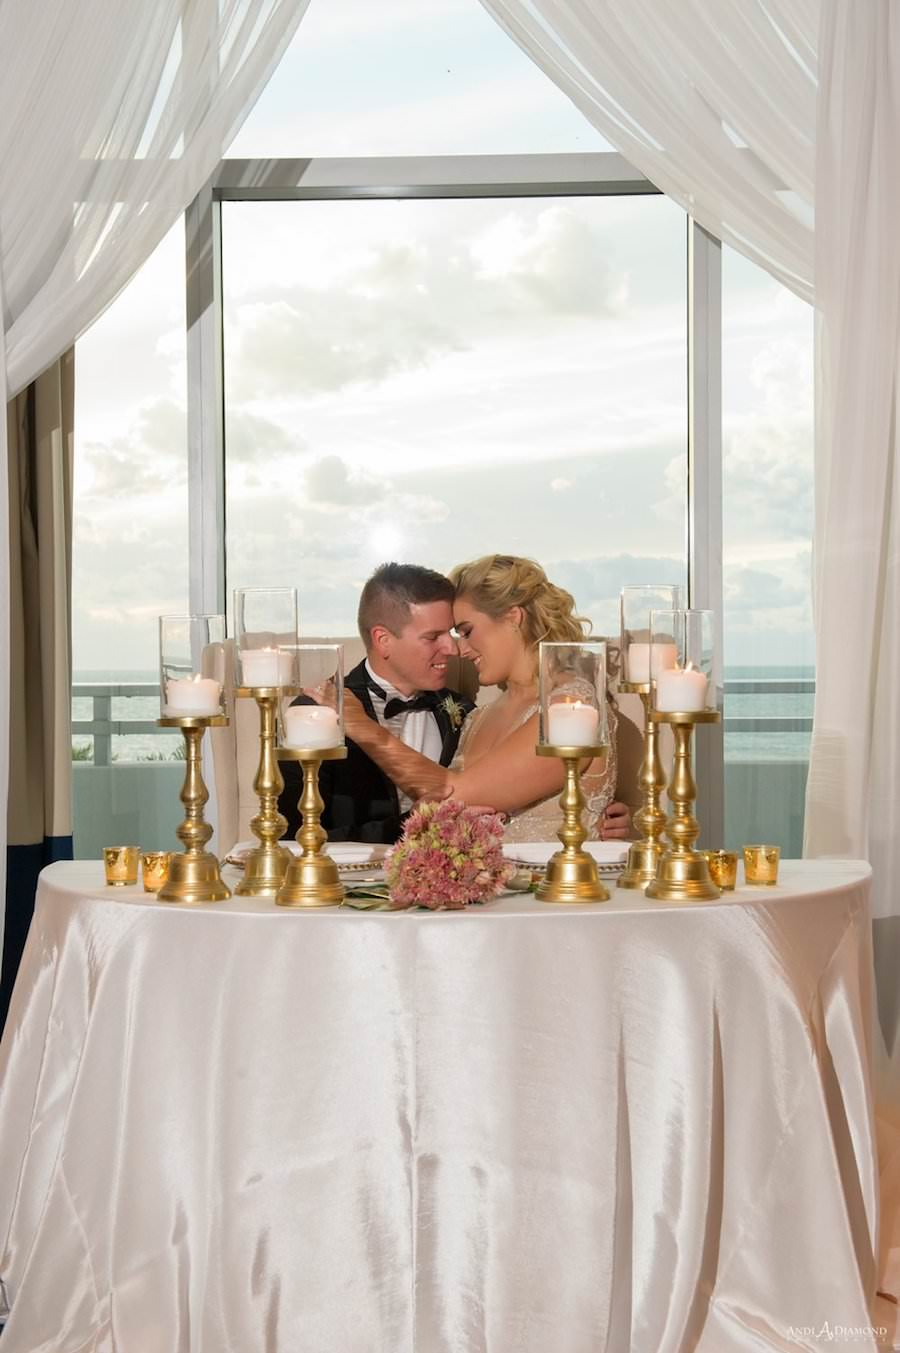 Bride and Groom Wedding Reception Portrait at Sweetheart Table | Clearwater Beach Wedding Venue | Wyndham Grand Clearwater Beach